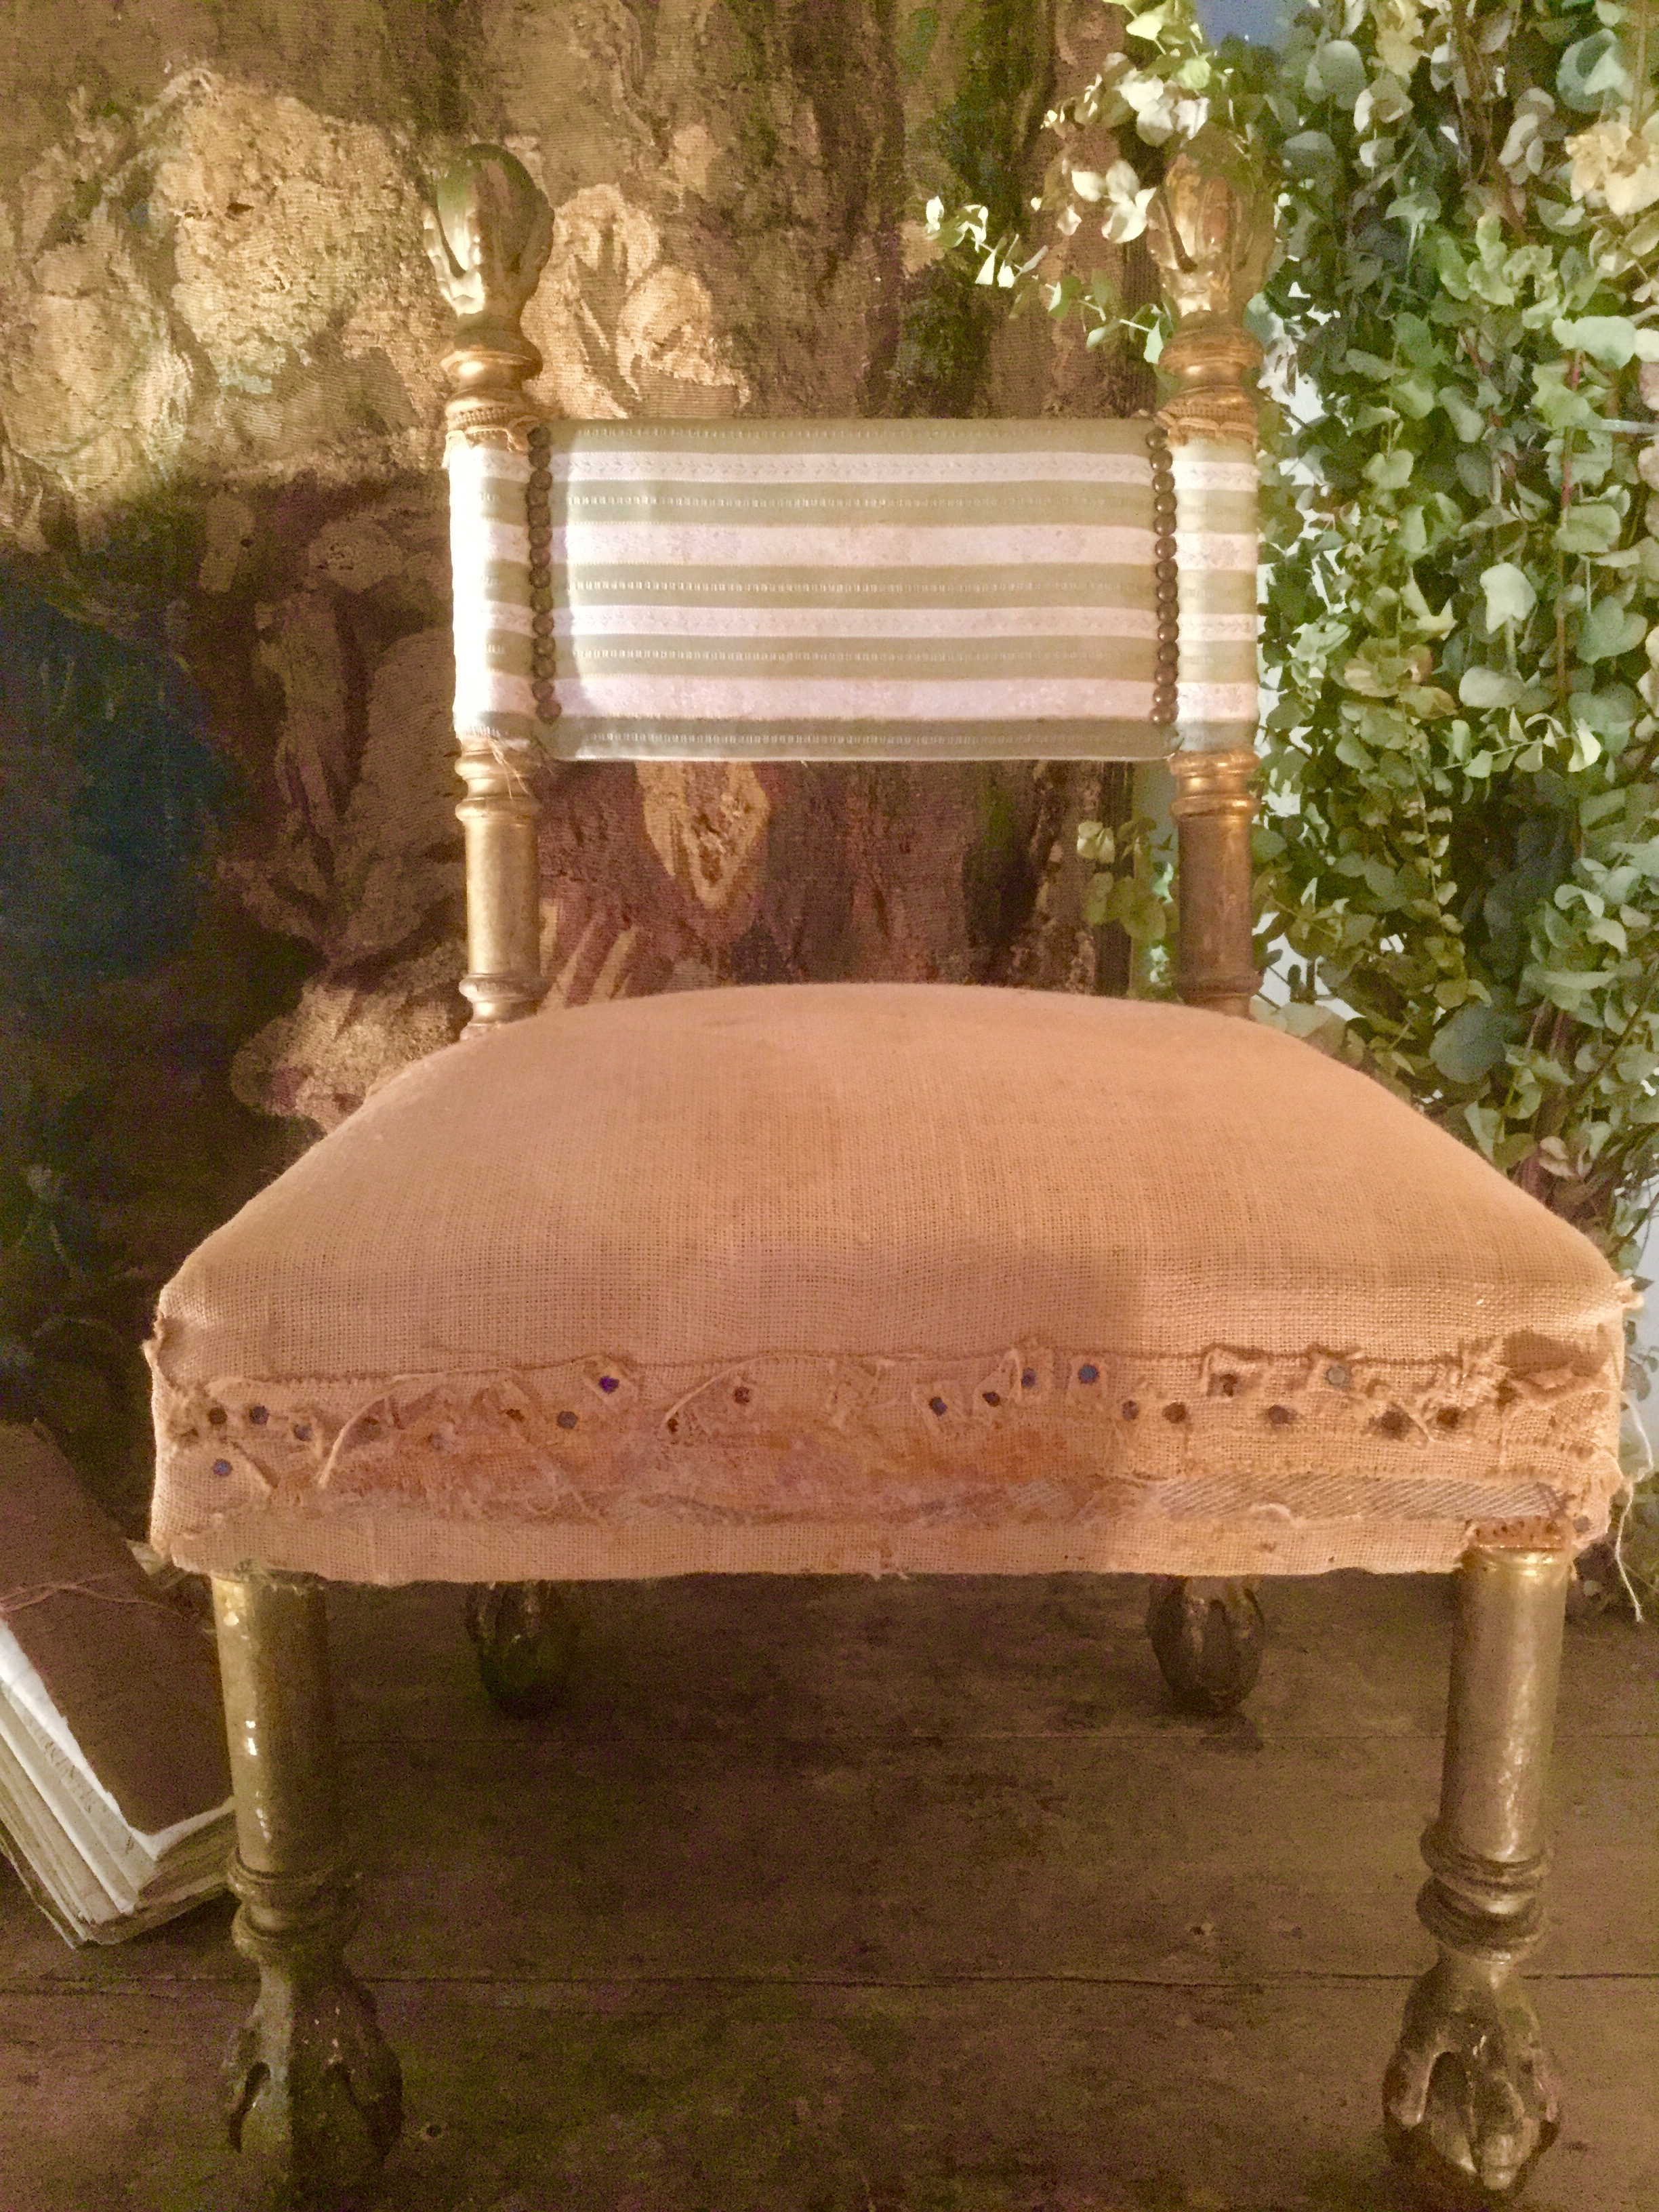 chauffeuse napoleon iii polychrome napoleon iii chauffeuse golden wood paul bert serpette. Black Bedroom Furniture Sets. Home Design Ideas